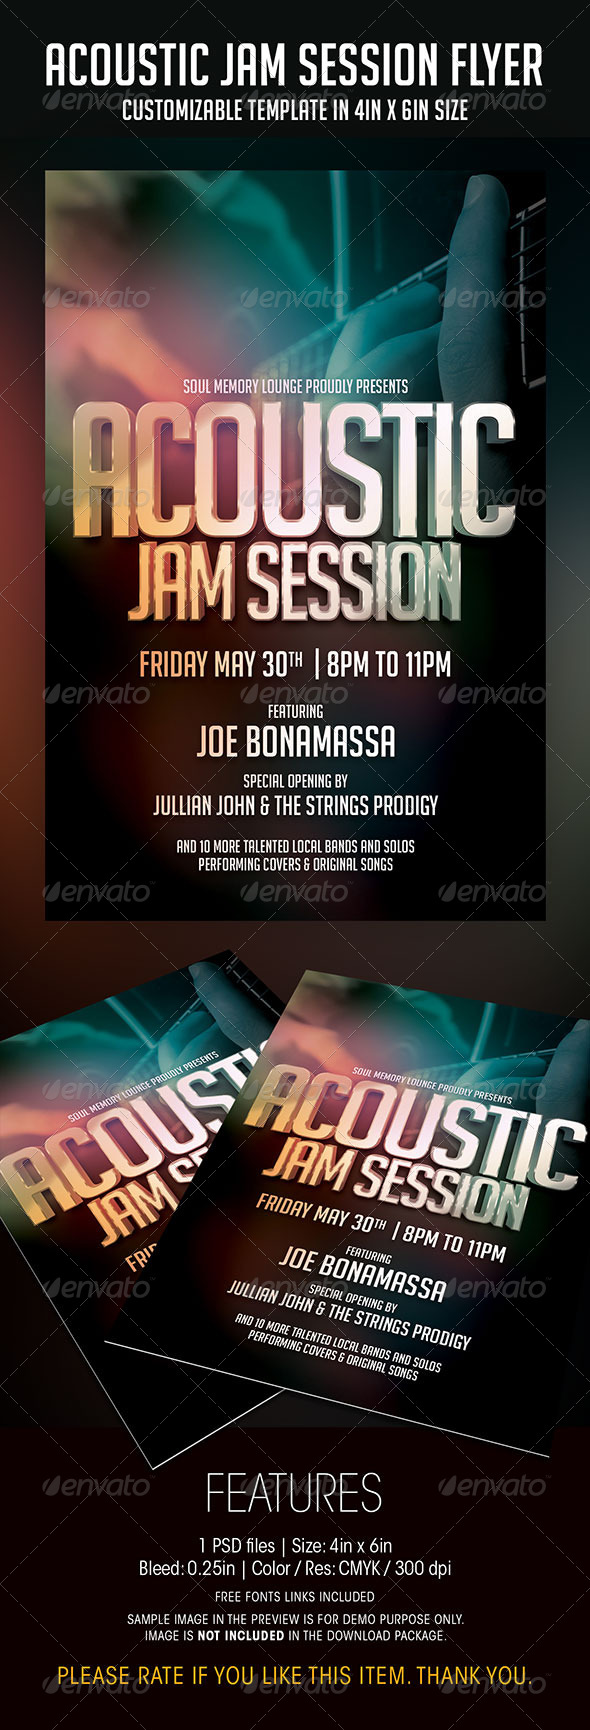 Acoustic Jam Session Flyer